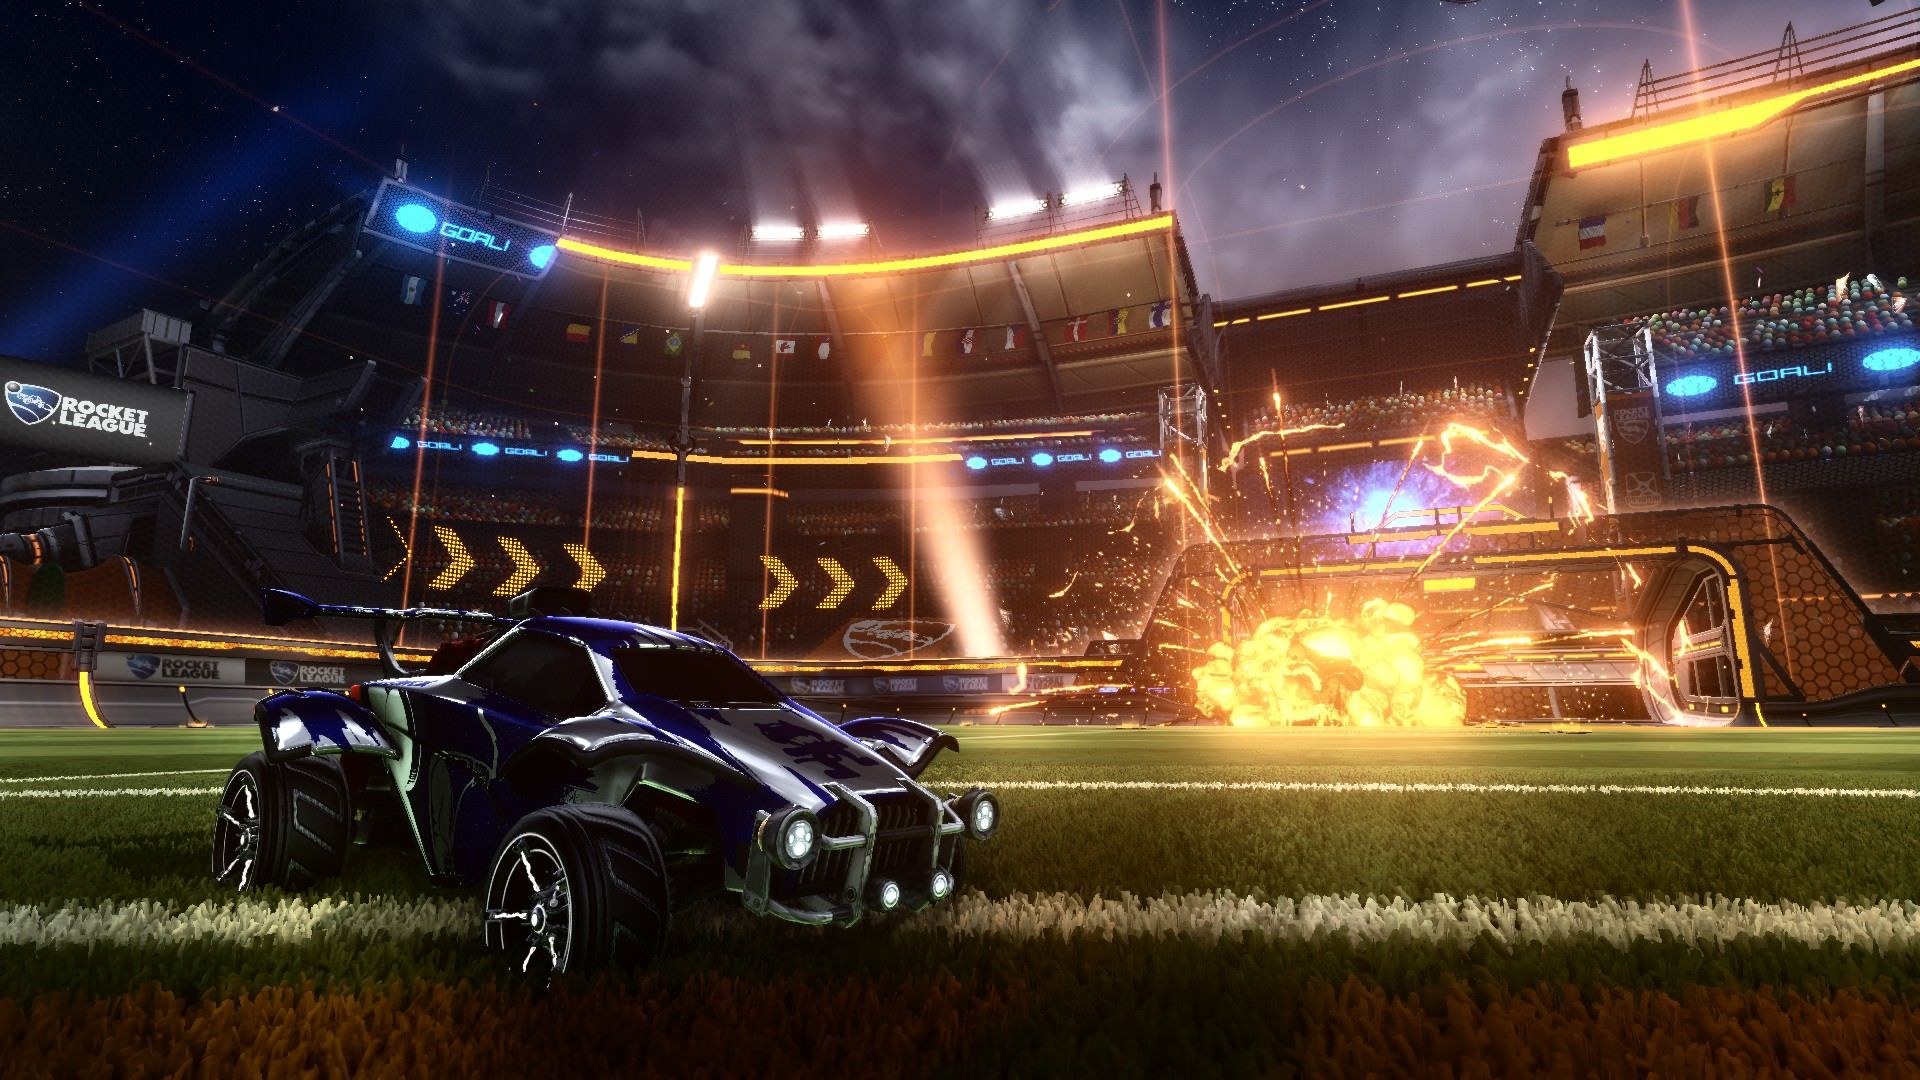 Rocket League Wallpapers Top Free Rocket League